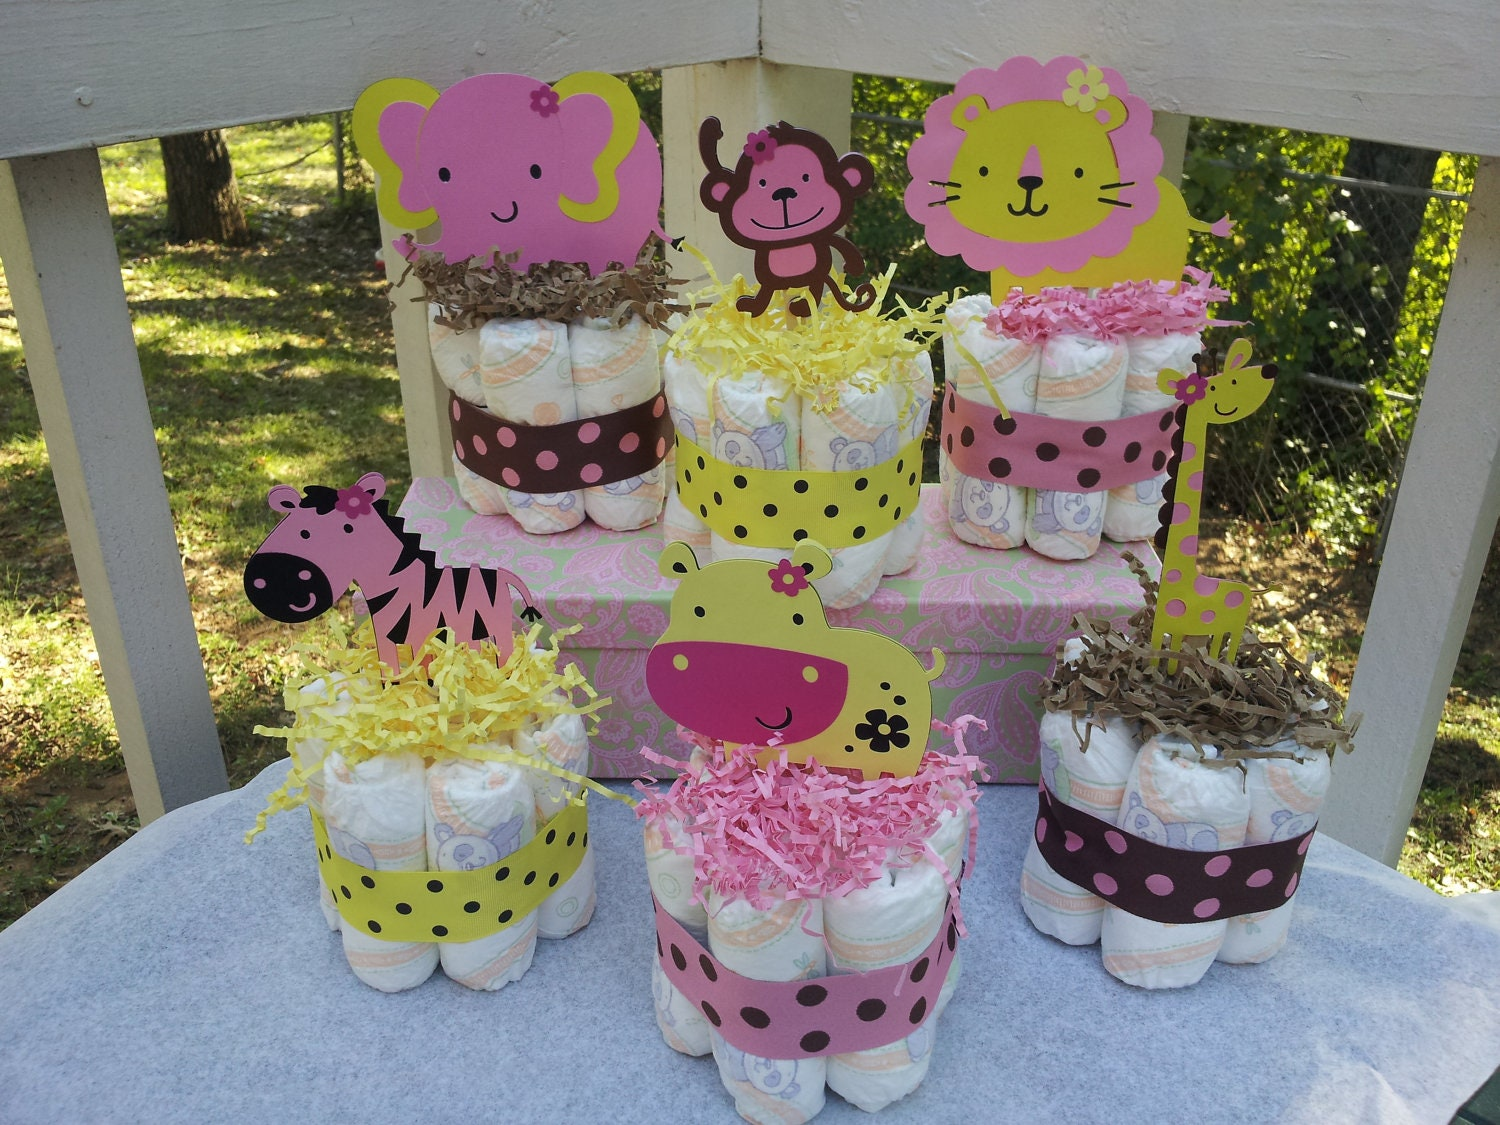 6 Jungle theme mini diaper cakes for GIRL baby shower